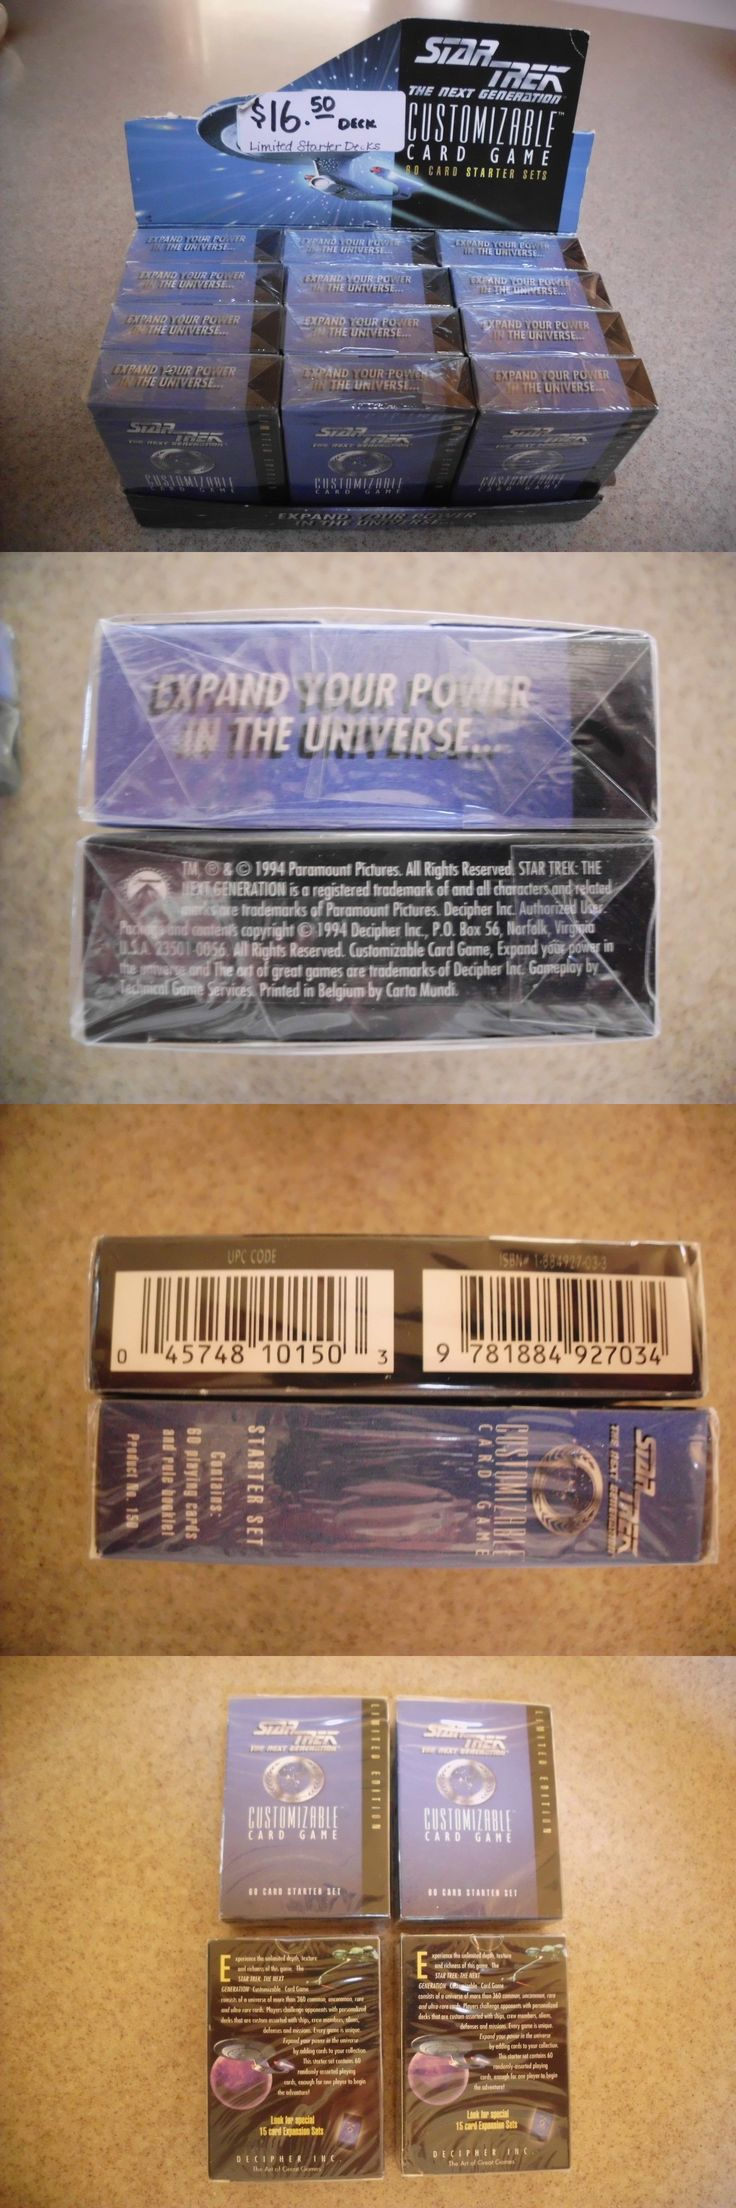 CCG Sealed Booster Packs 183456: Star Trek The Next Generation Customizable Card Game Expansion Limited Edition -> BUY IT NOW ONLY: $44.99 on eBay!